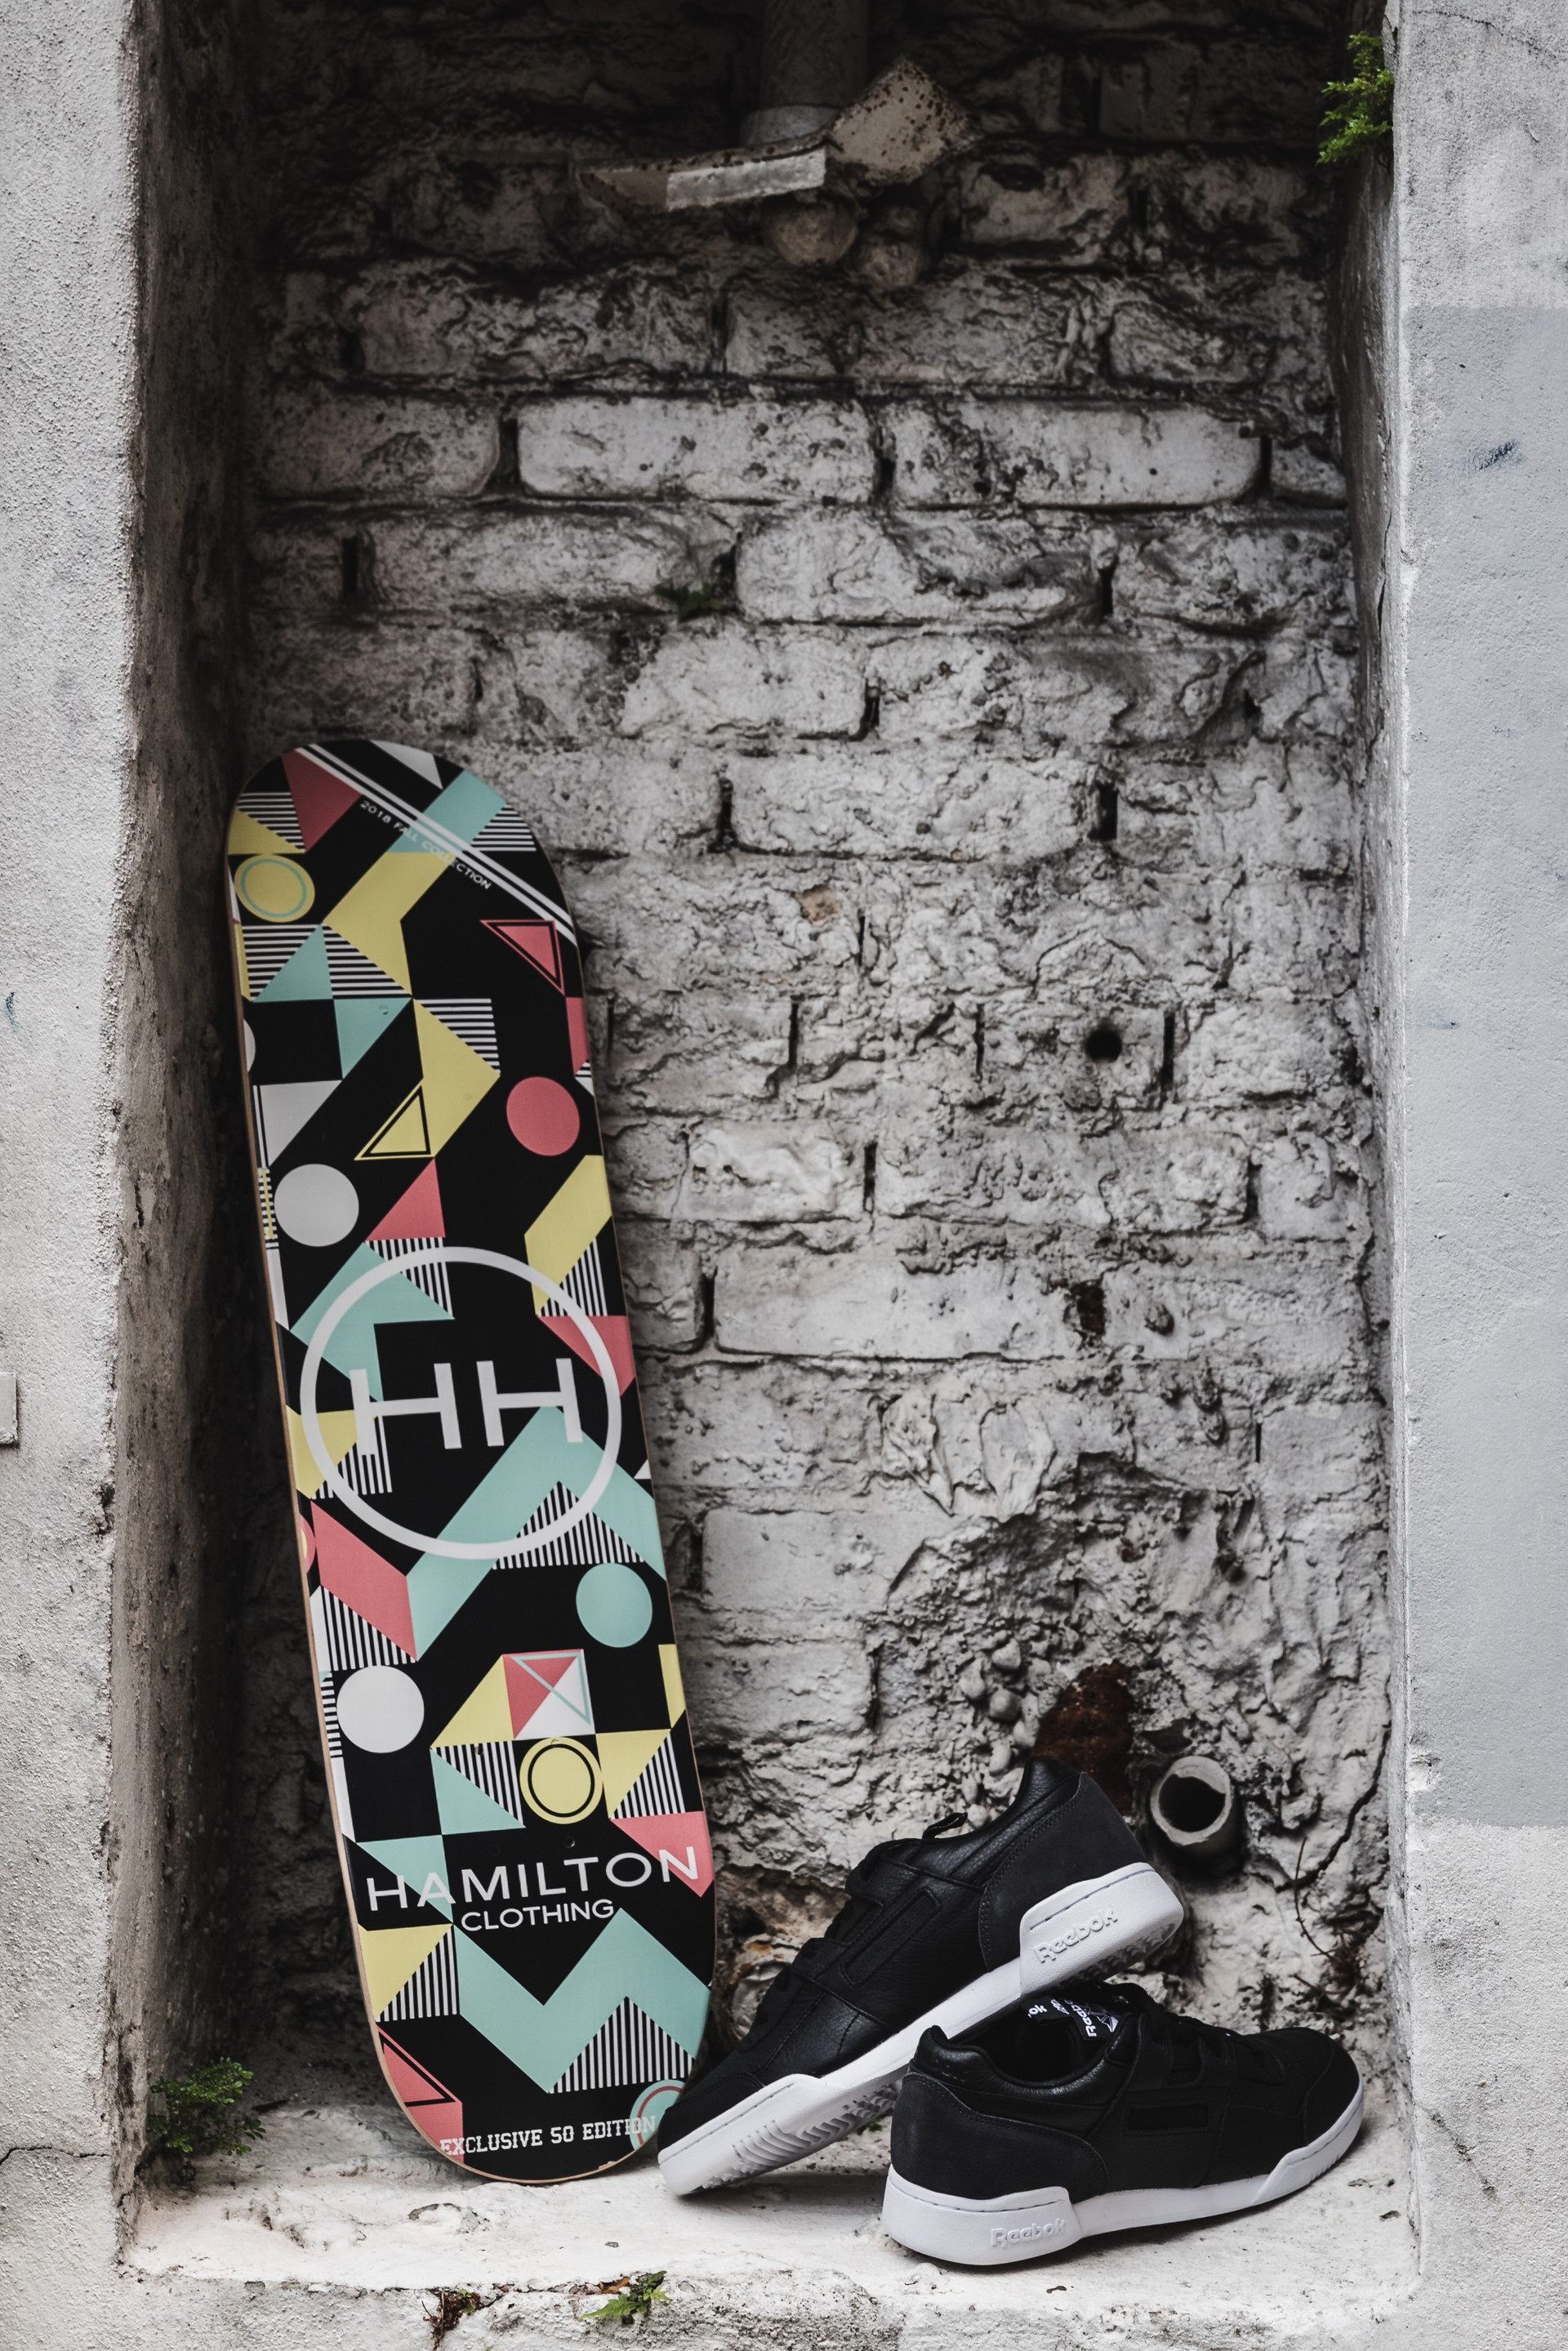 Geometric skateboard deck paired with Puma sneakers